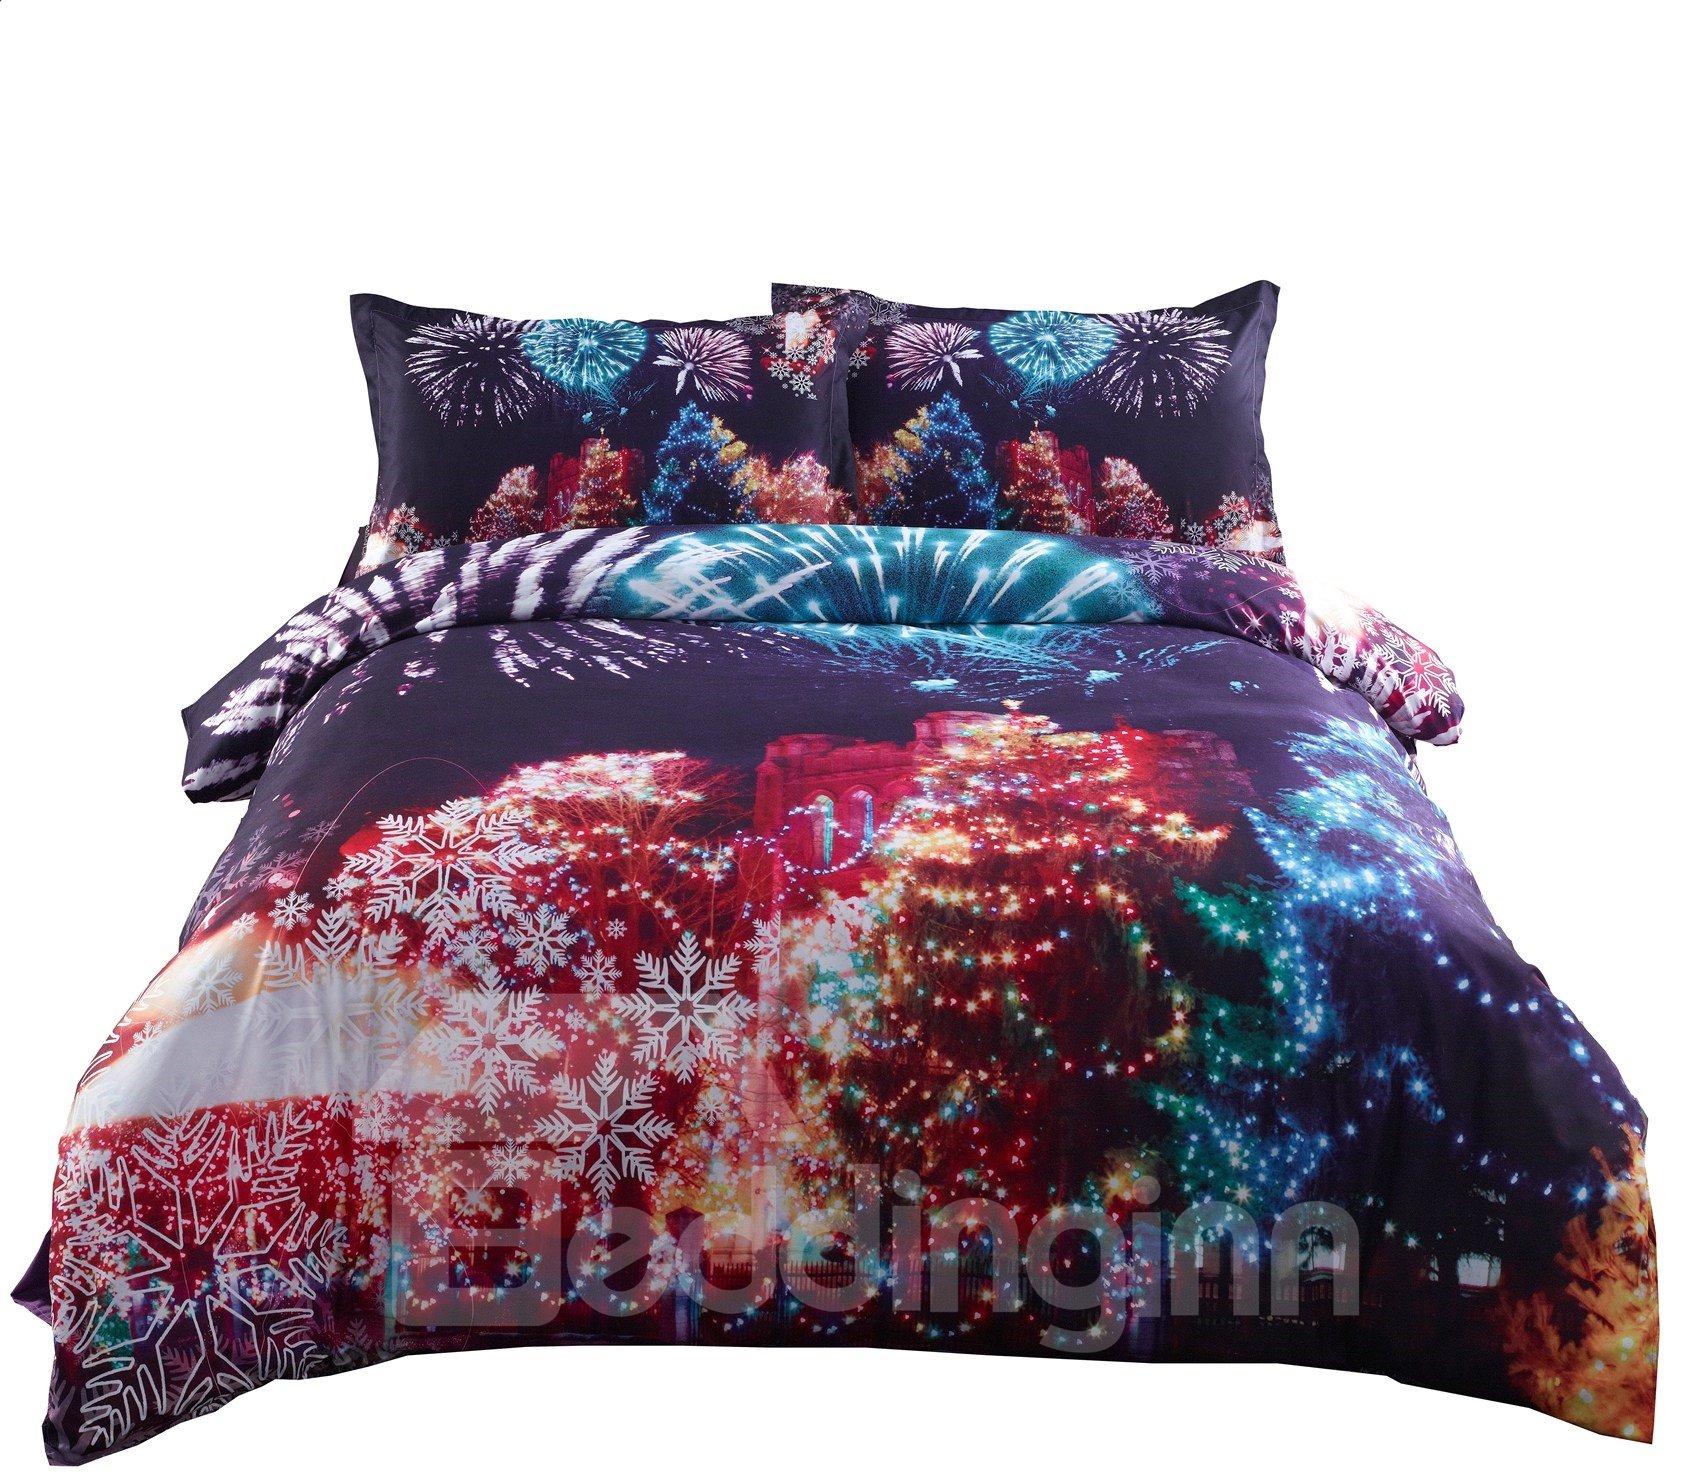 Onlwe 3D Christmas Trees and Fireworks Printed Cotton 4-Piece Bedding Sets/Duvet Covers